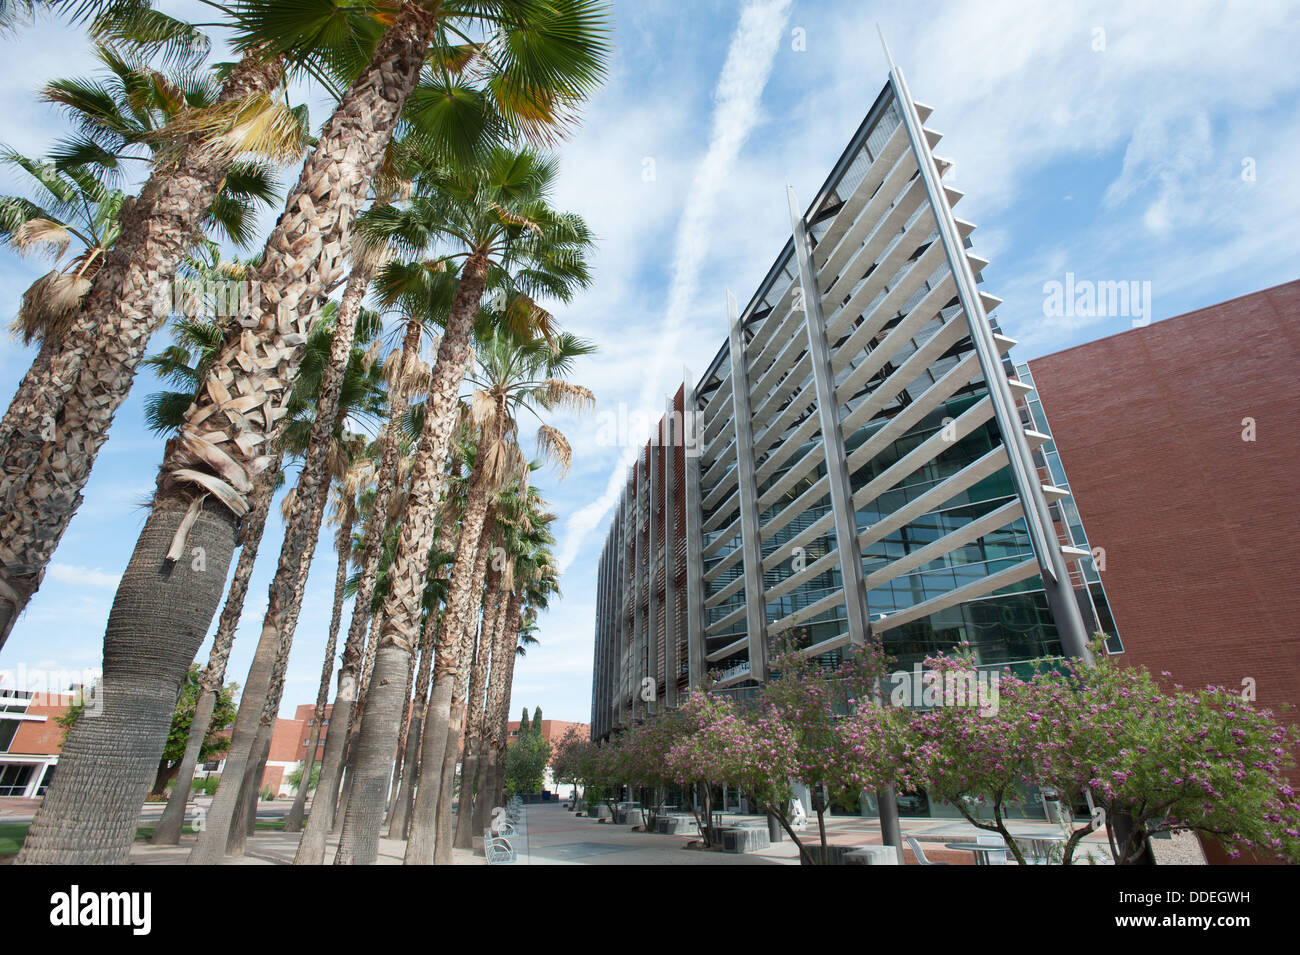 University of Arizona Campus buildings Stock Photo: 59942221 - Alamy